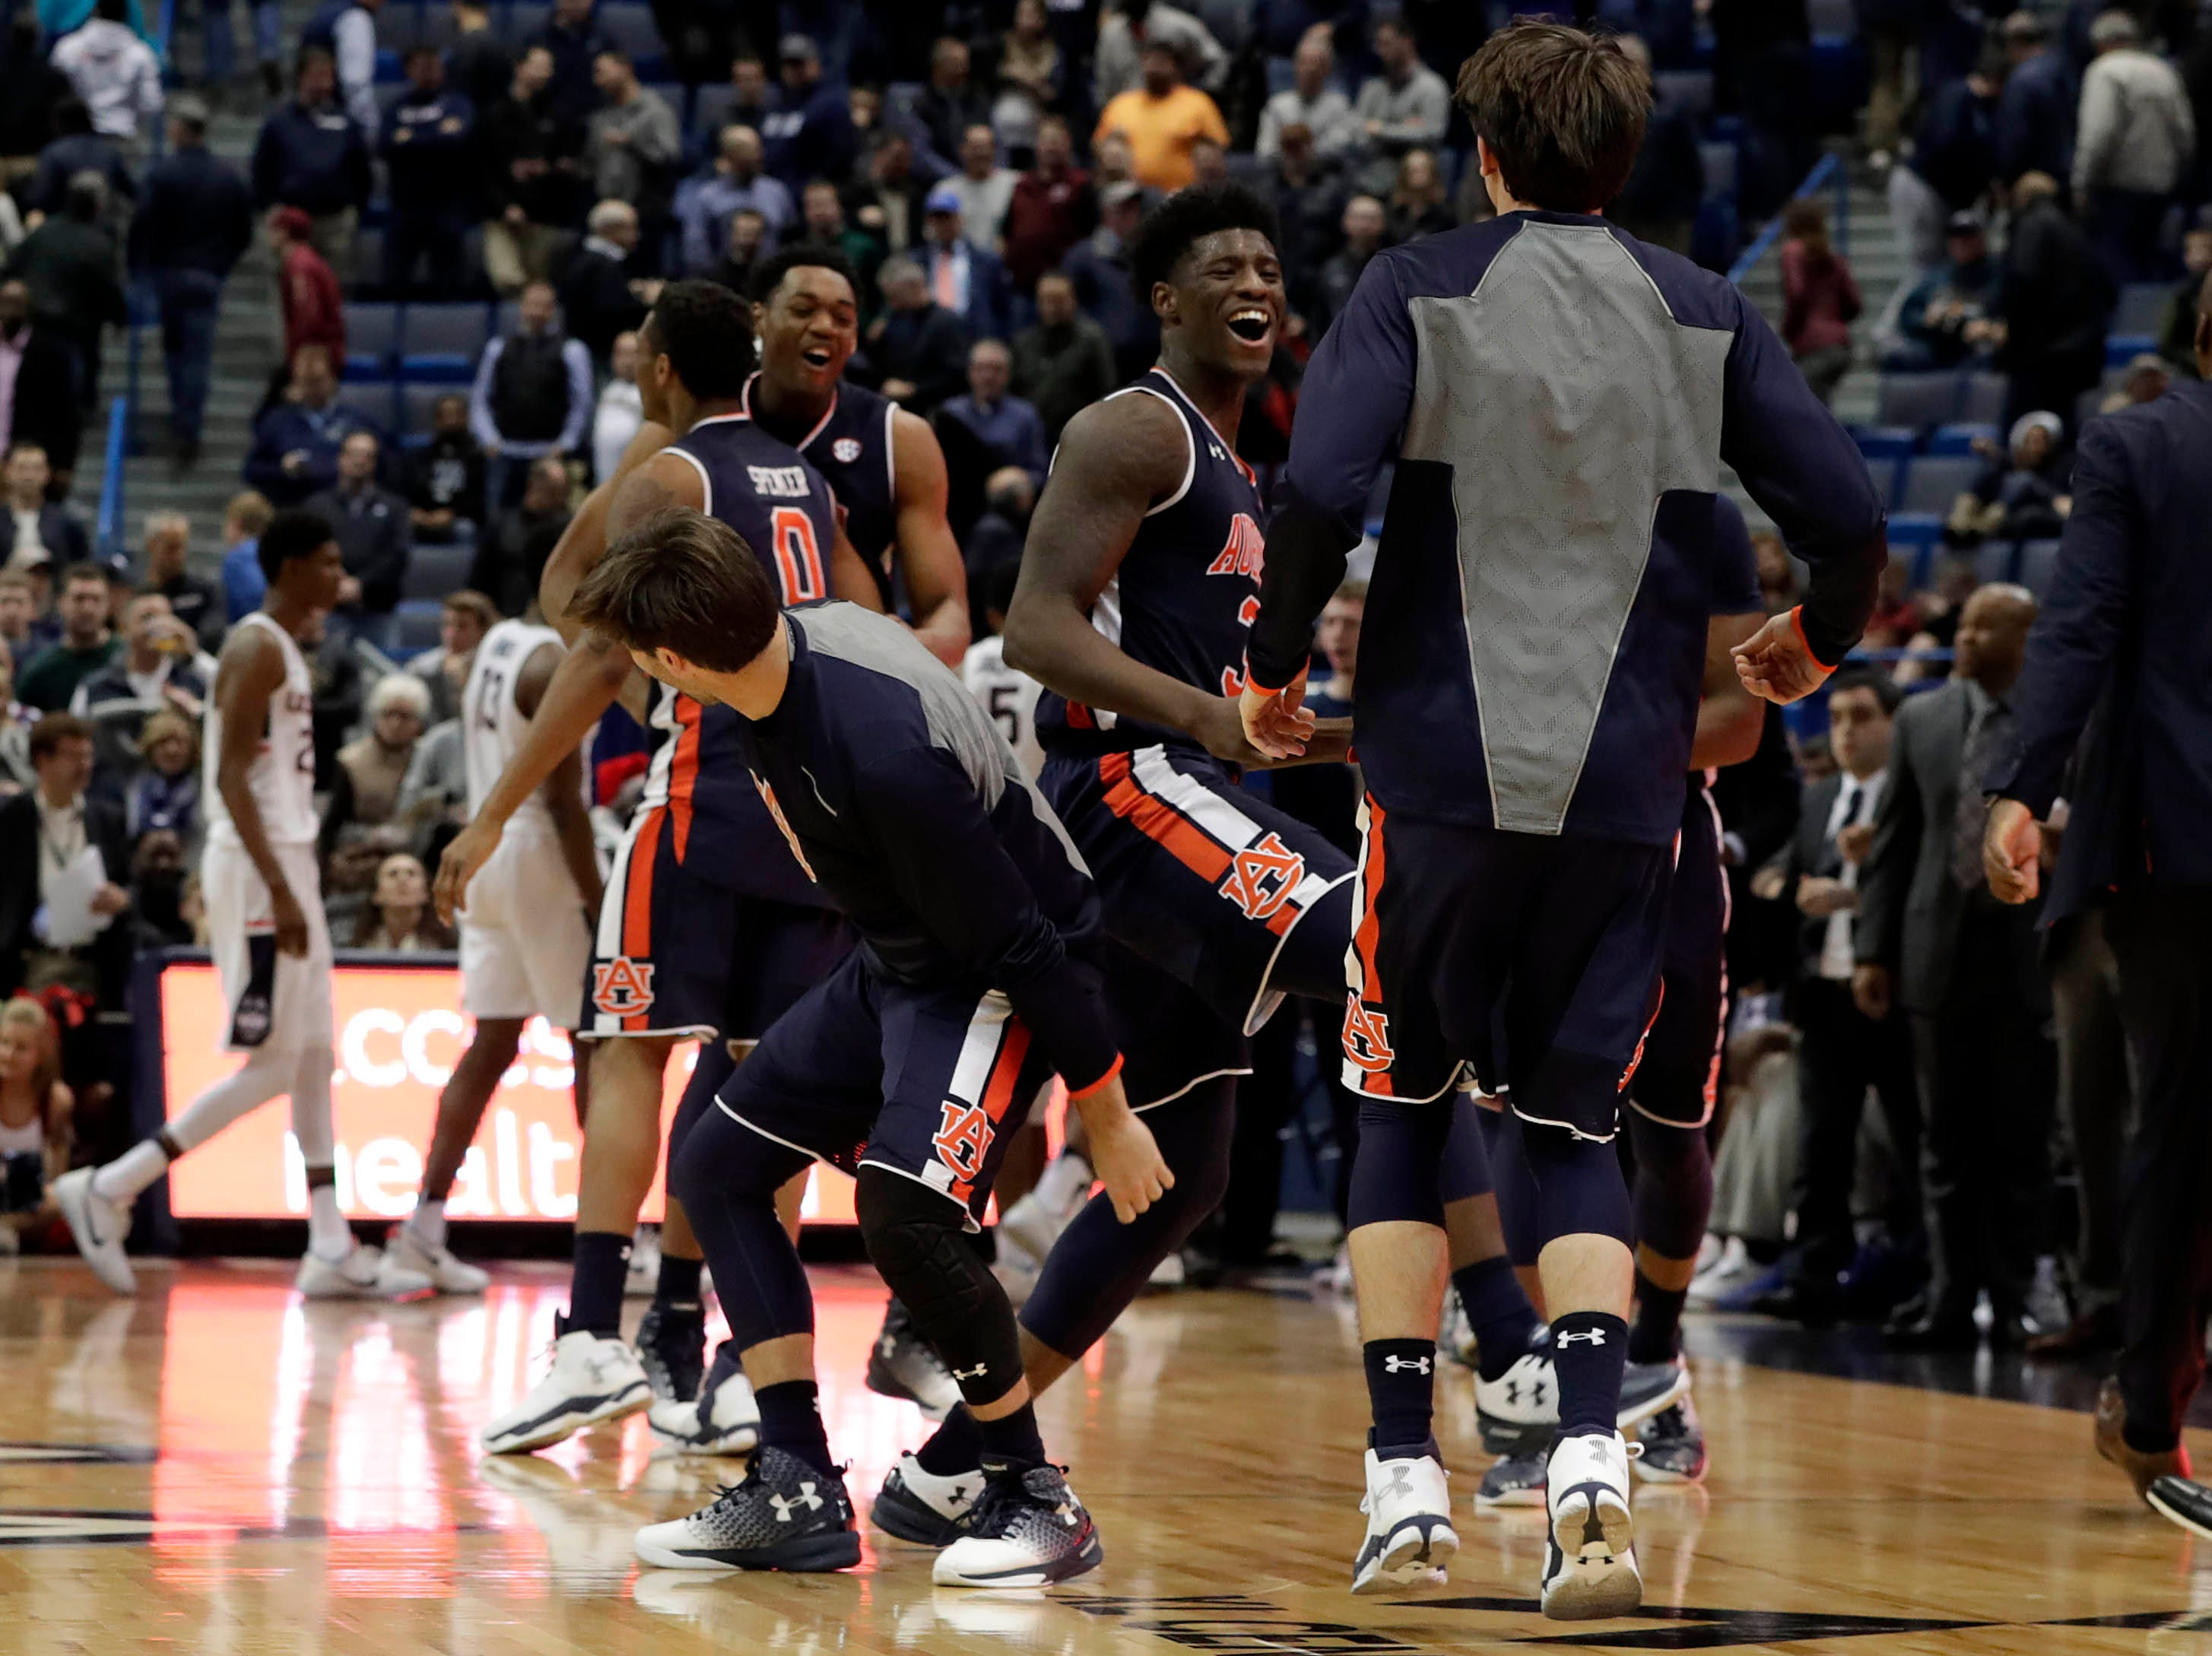 Dec 23, 2016; Hartford, CT, USA; Auburn Tigers forward Danjel Purifoy (3) and his teammates celebrate their overtime win against the Connecticut Huskies at XL Center. Auburn defeated UConn in overtime 70-67. Mandatory Credit: David Butler II-USA TODAY Sports